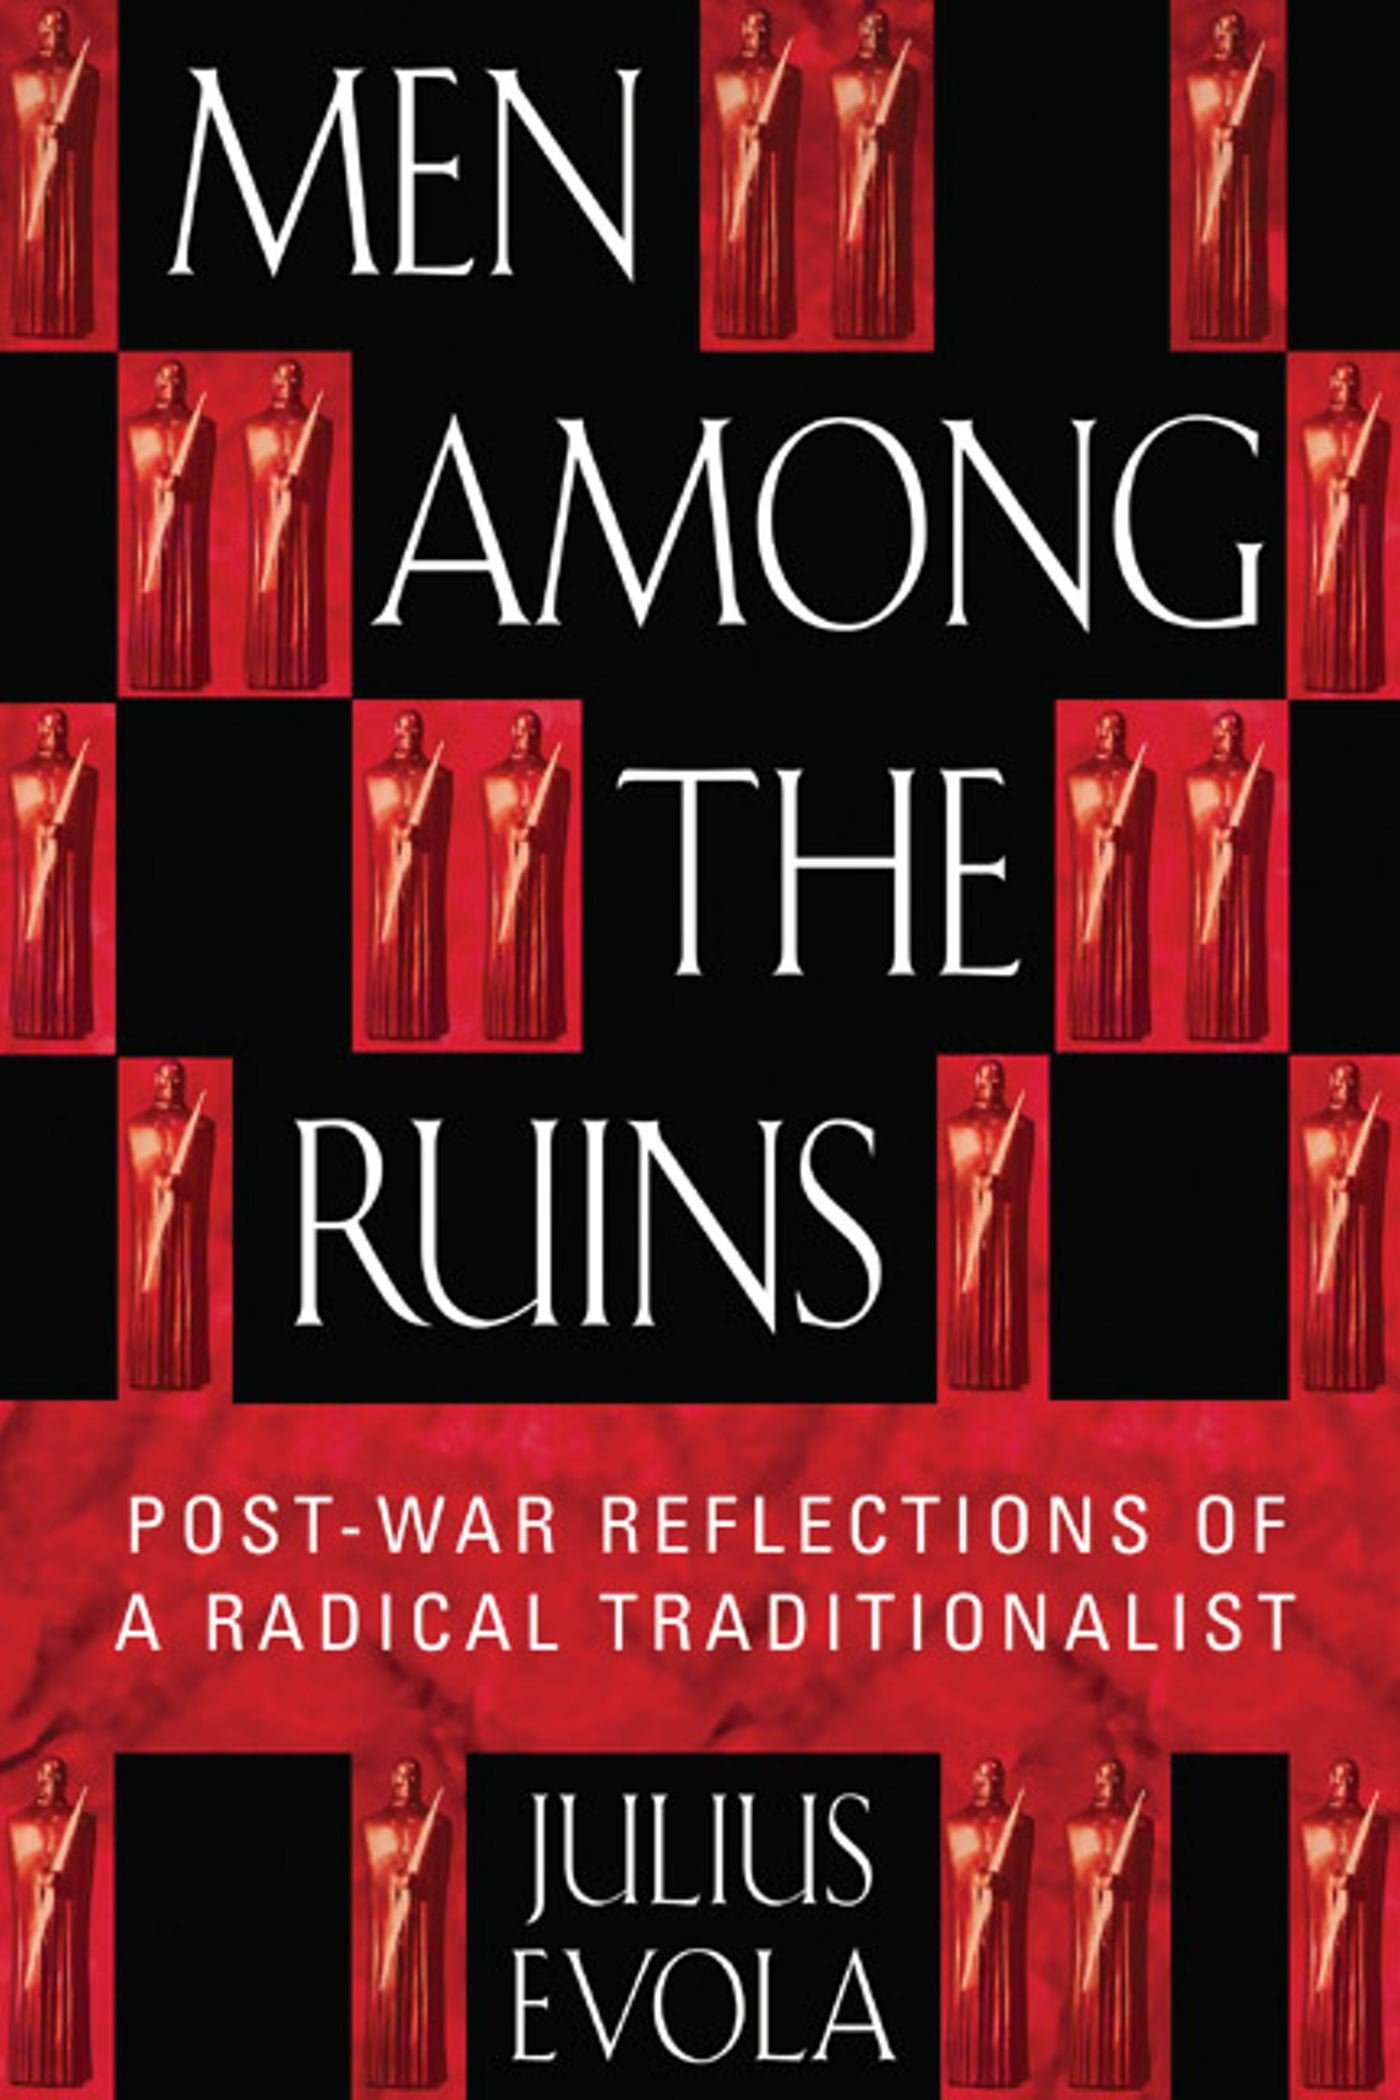 Men Among the Ruins. Postwar Reflections of a Radical Traditionalist by Julius Evola